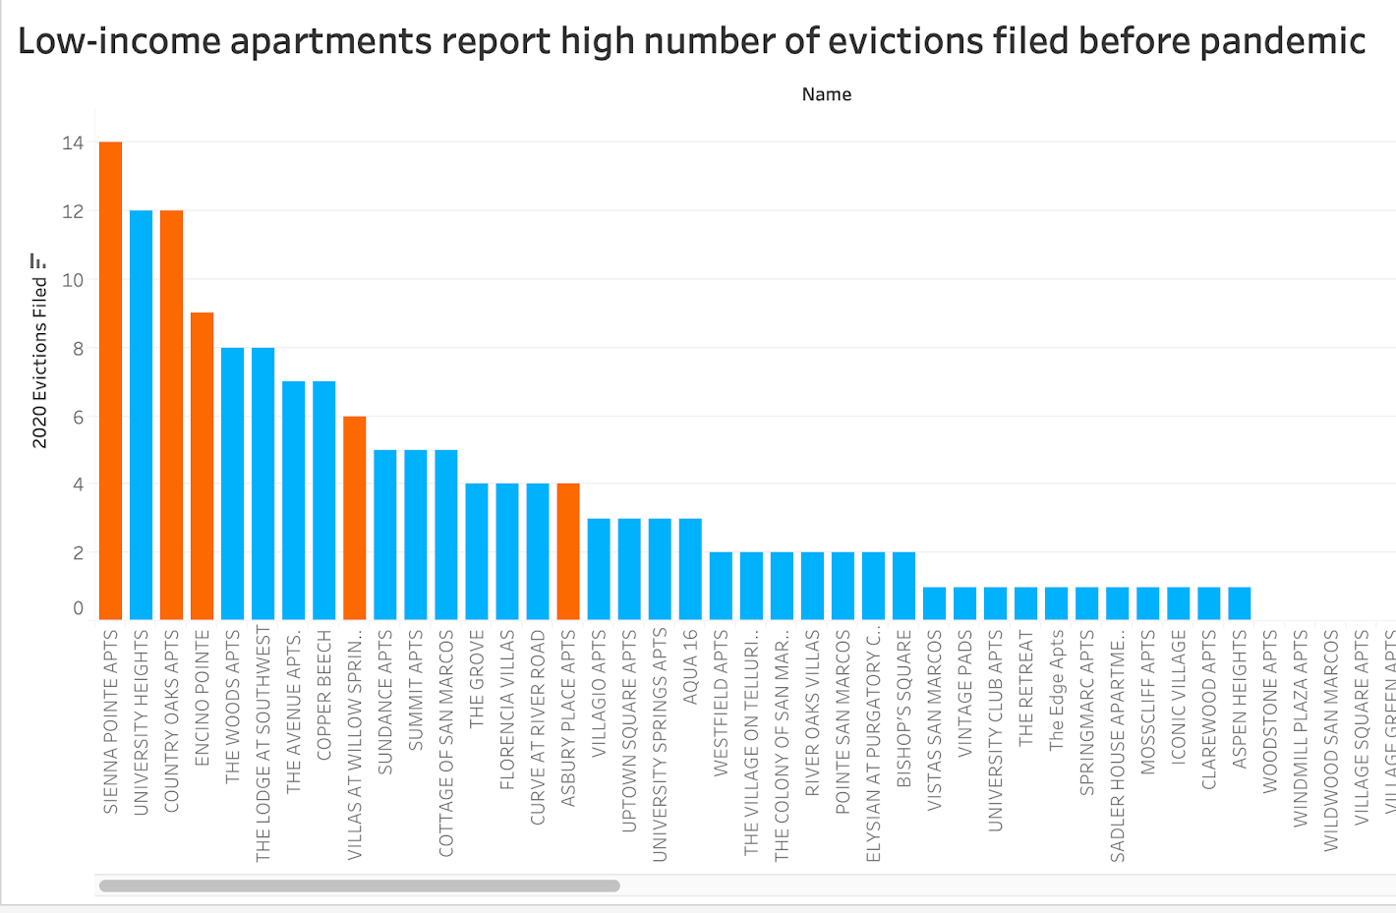 Eviction data